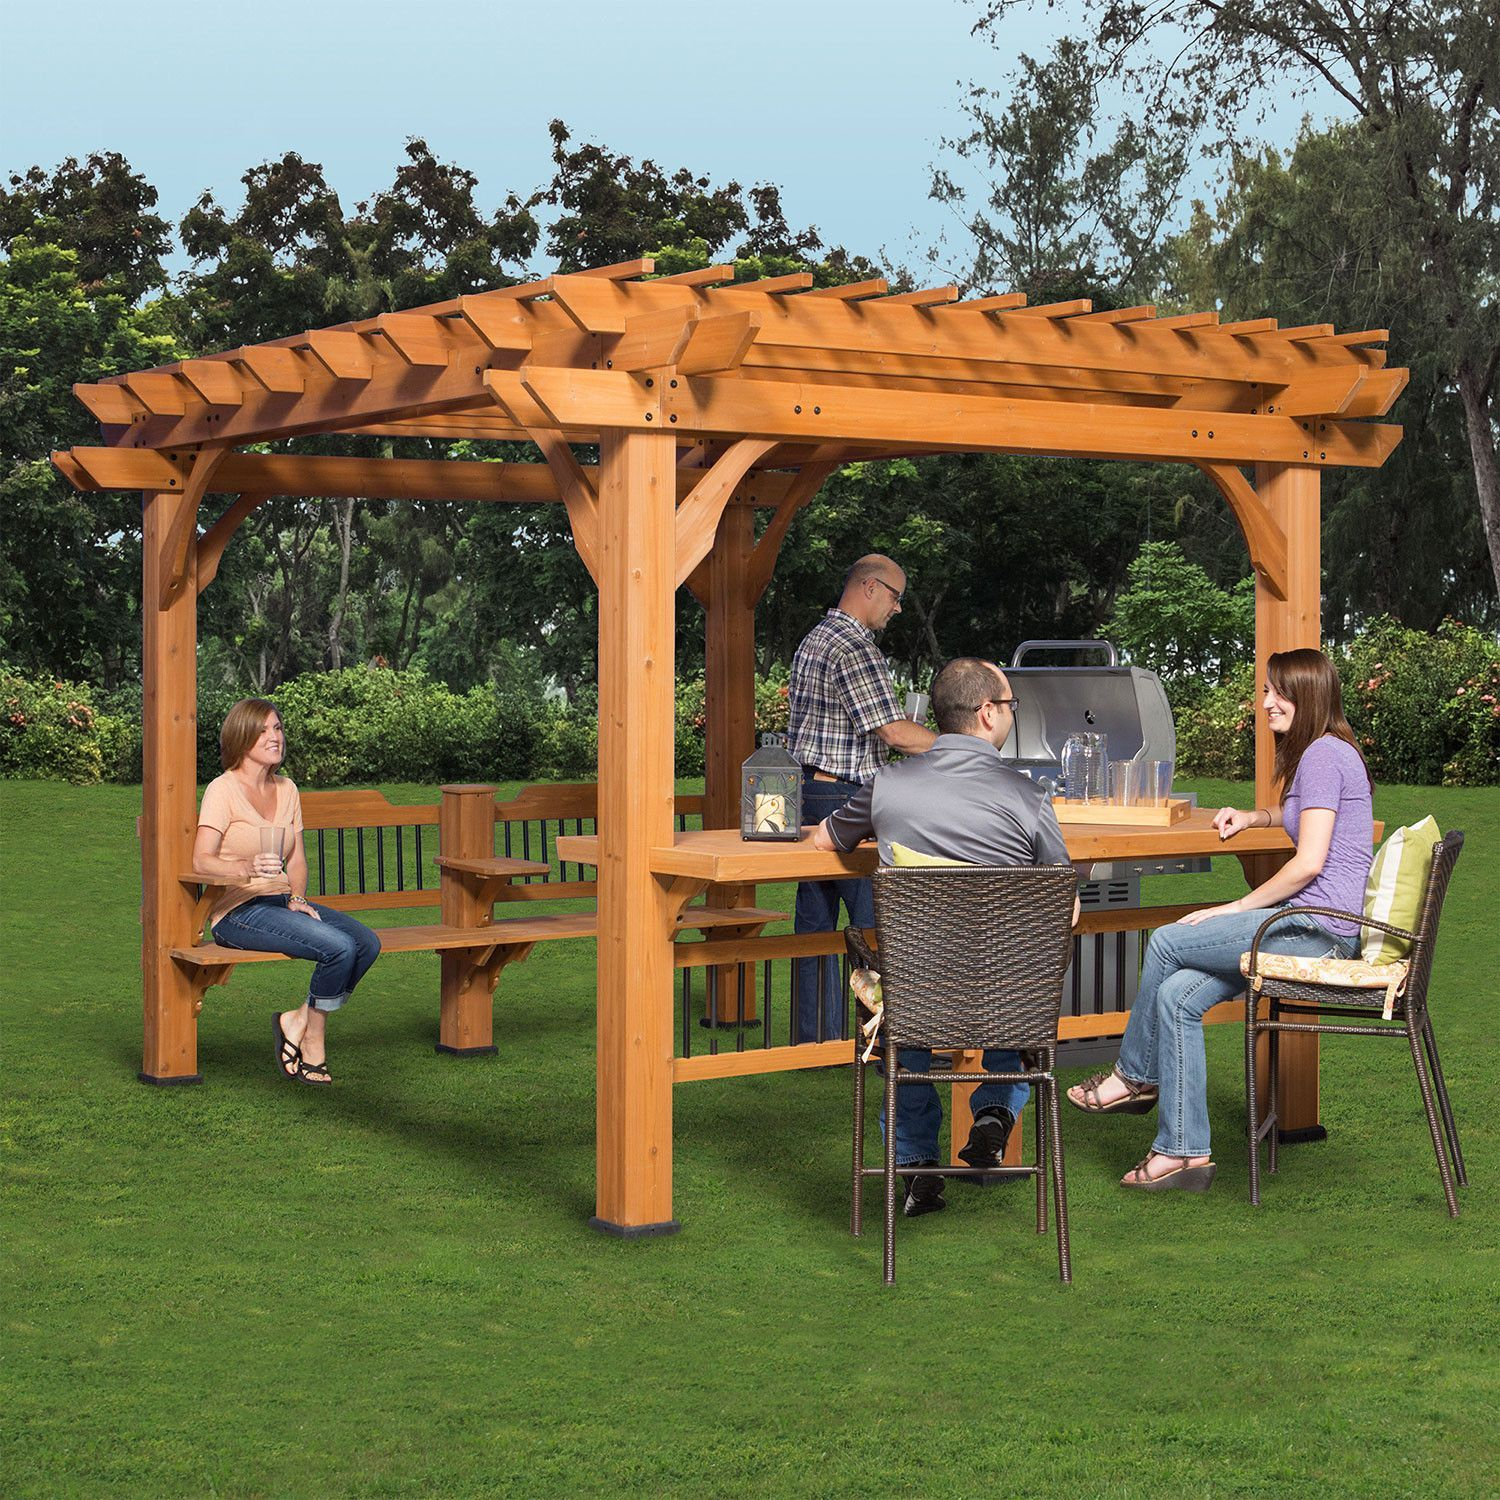 Oasis 12 X 10 Pergola Backyard Patio Backyard Backyard Pergola